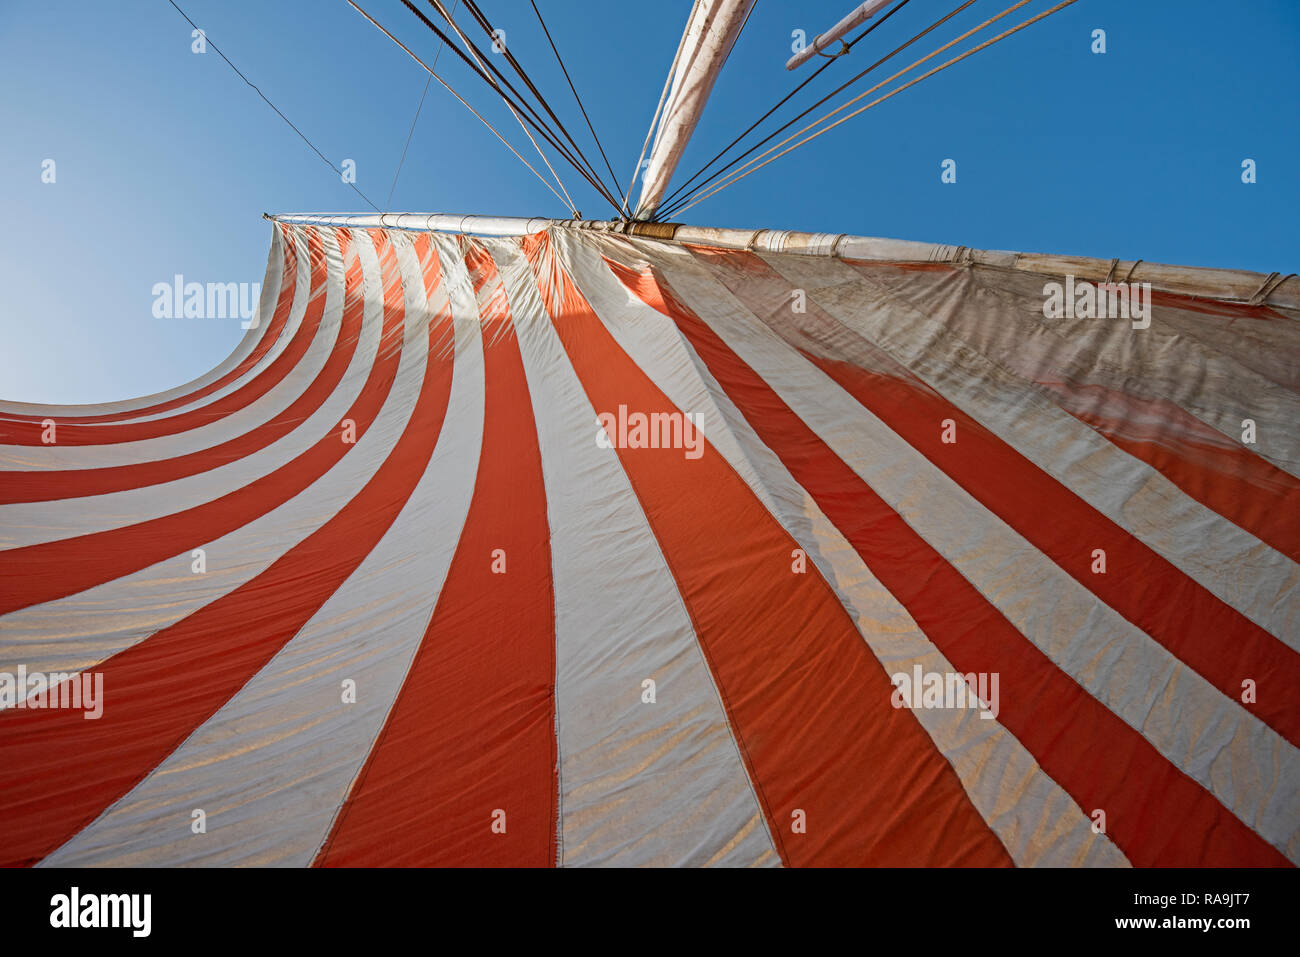 Abstract view of traditional striped cloth sail on egyptian wooden boat with mast and blue sky background - Stock Image